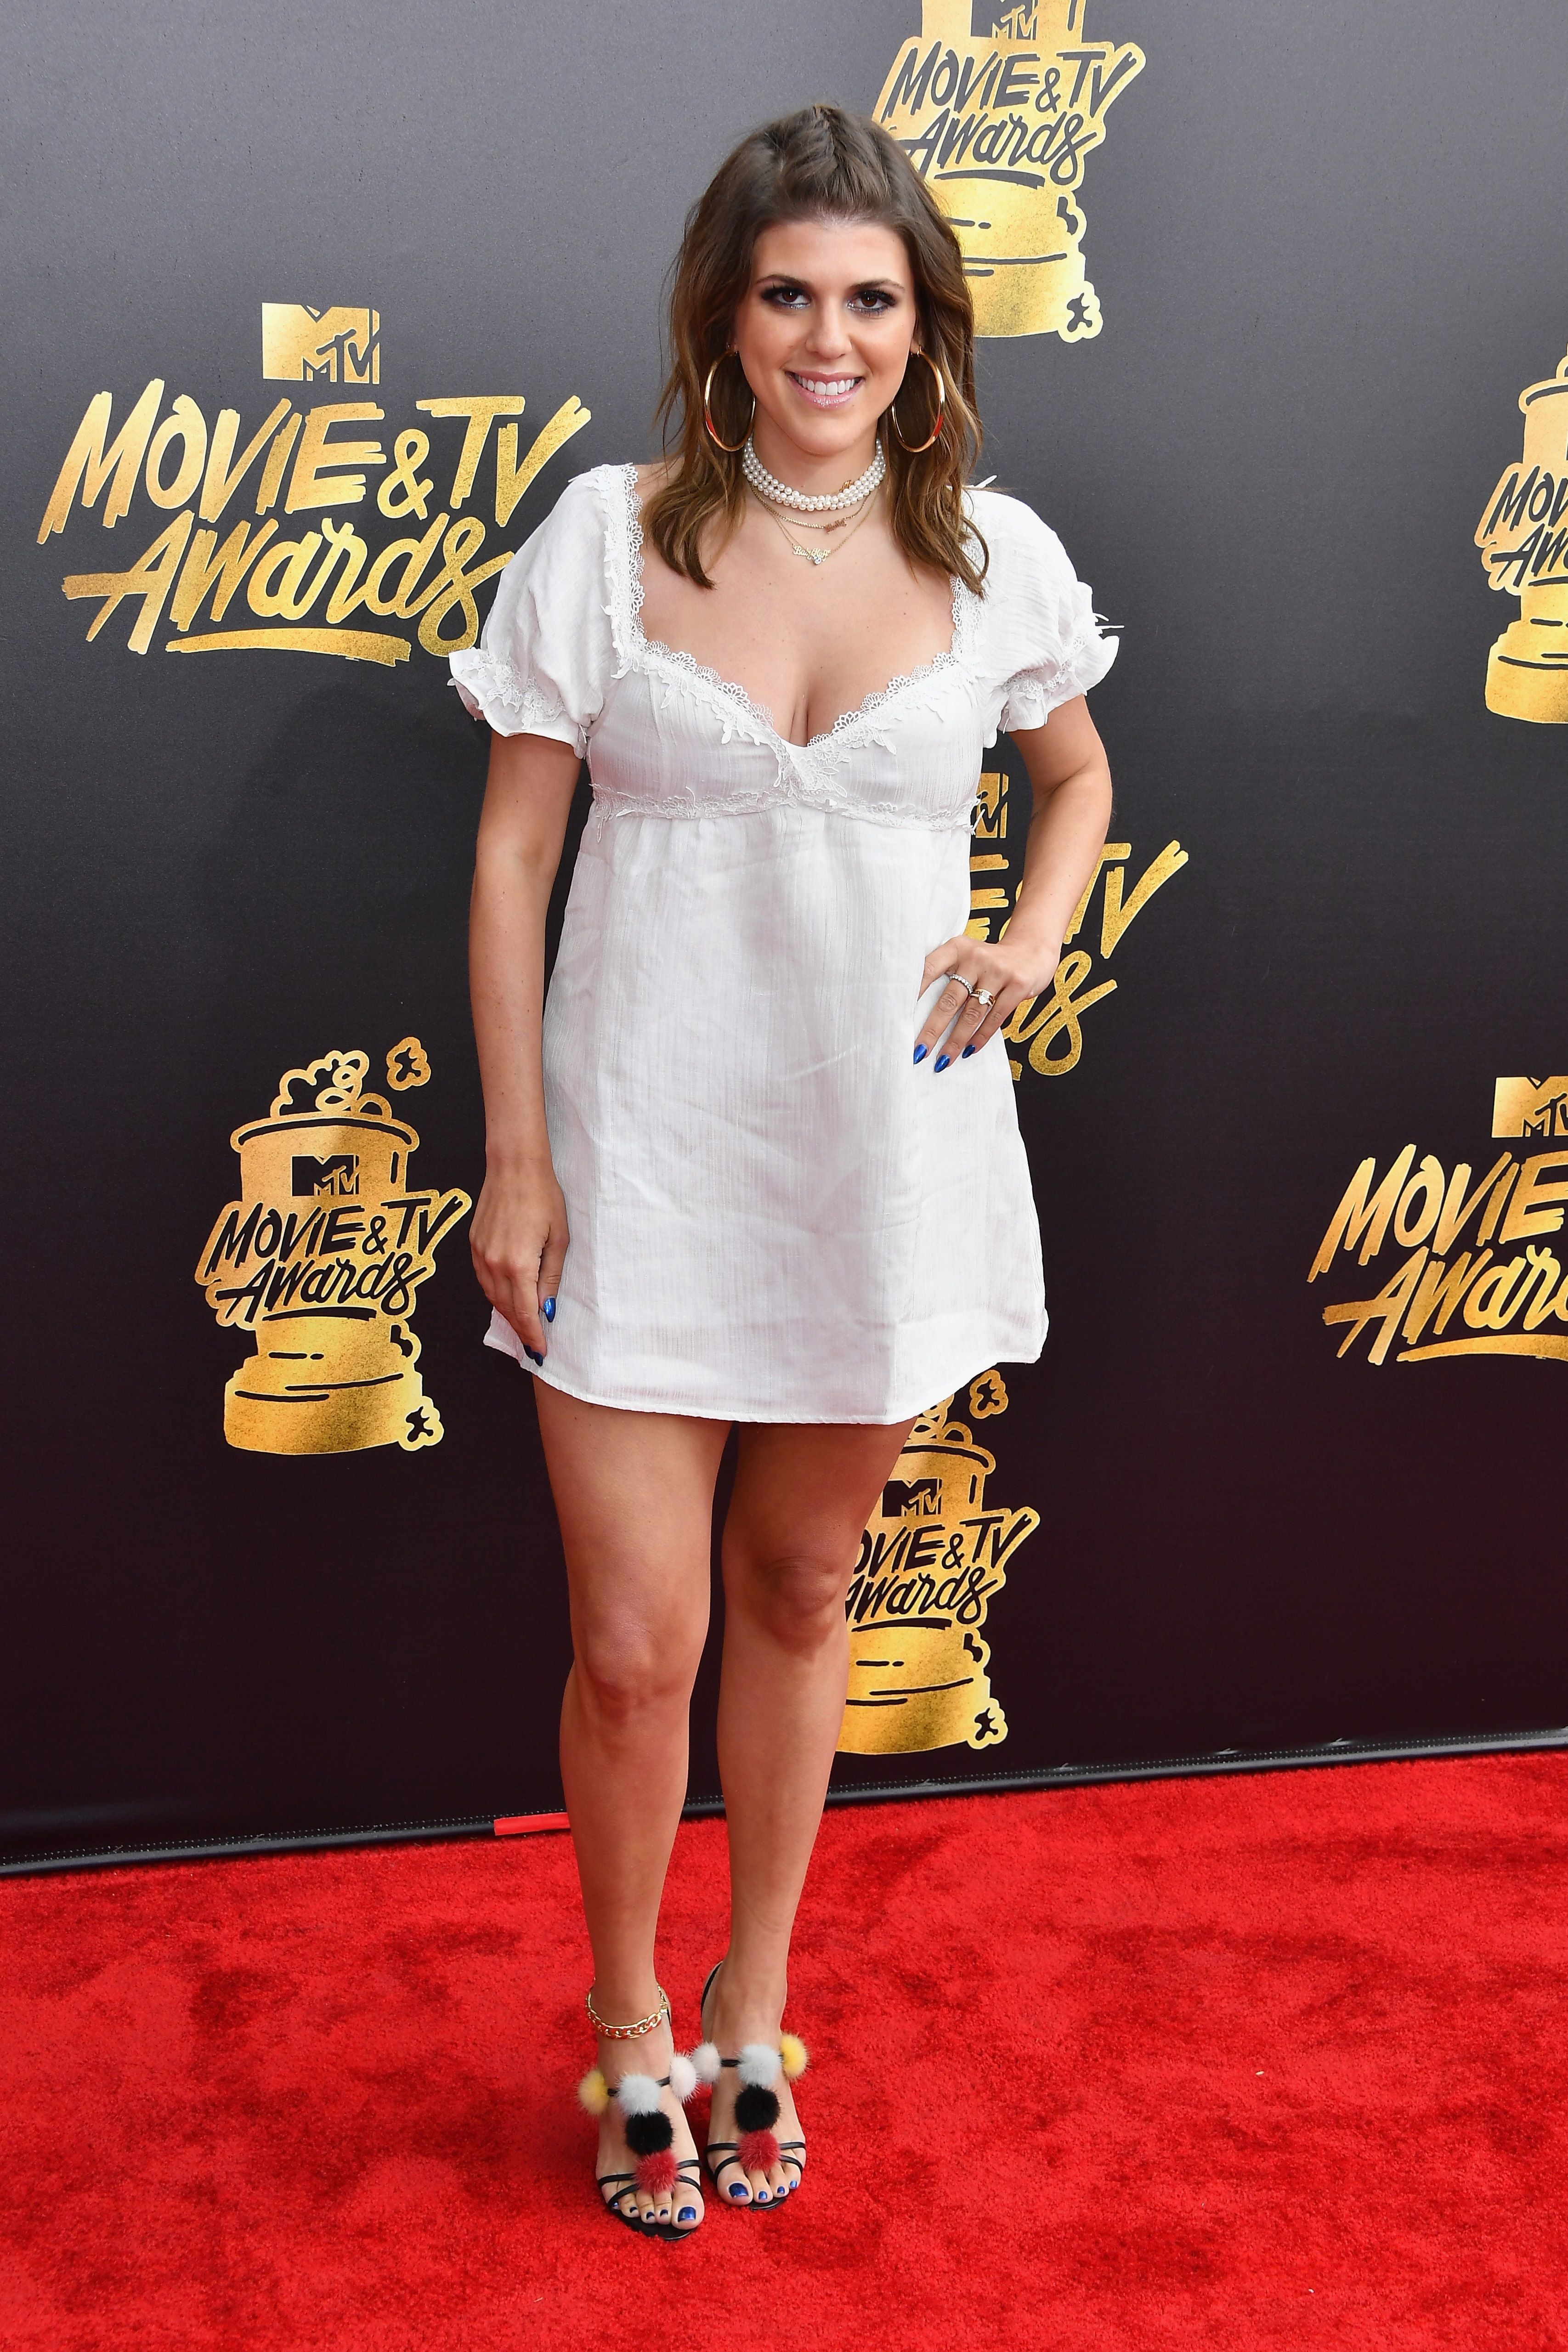 Sophie simmons new images